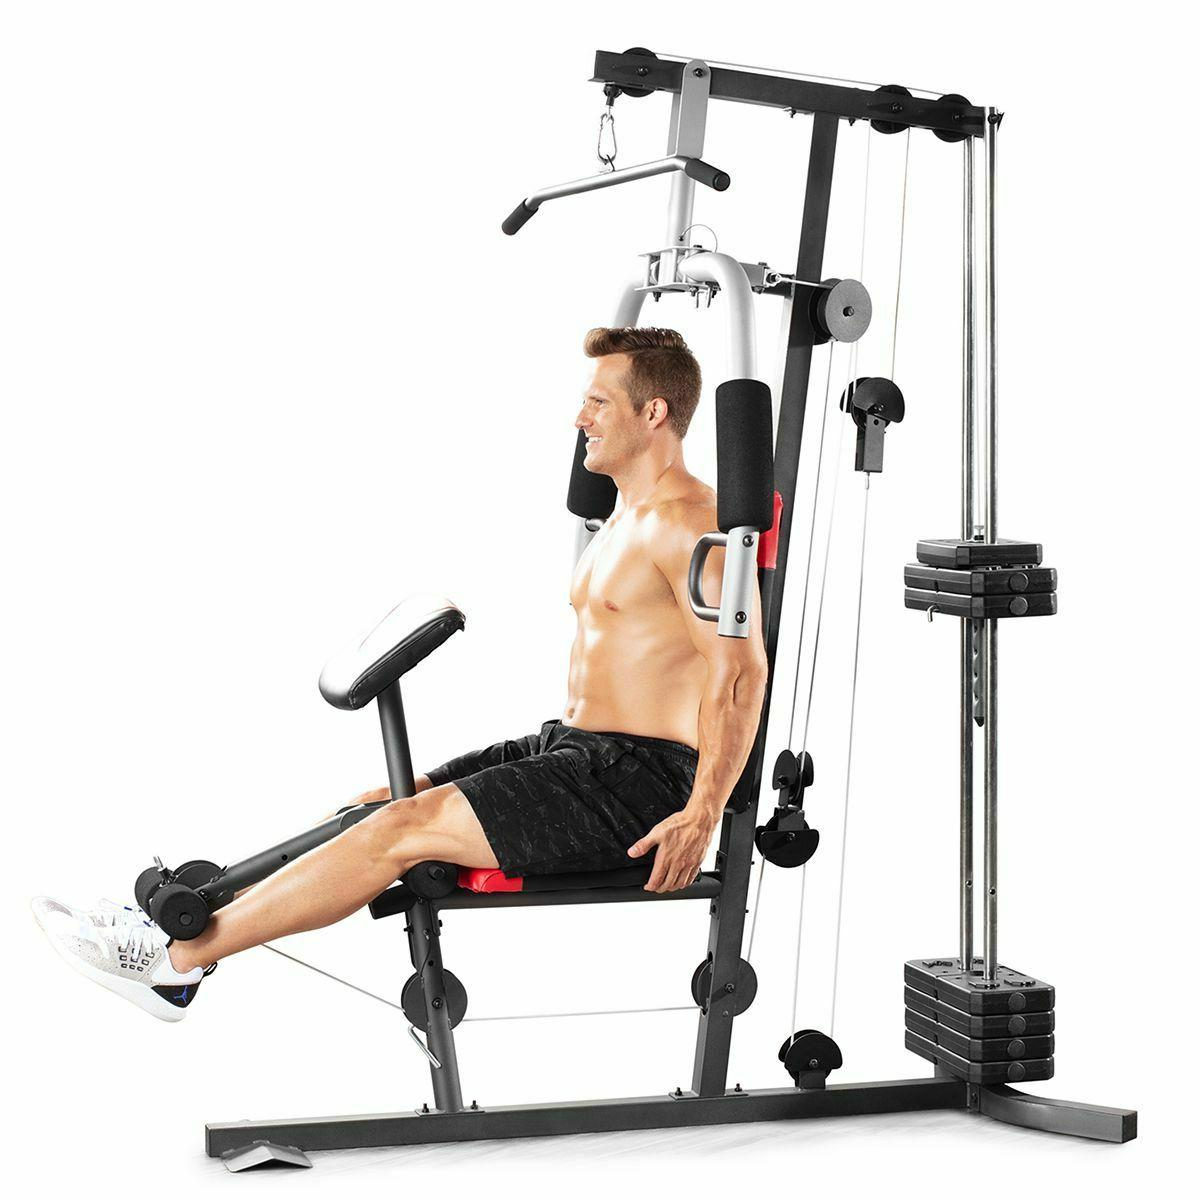 Weider Home Fitness Exercise Weights Bench